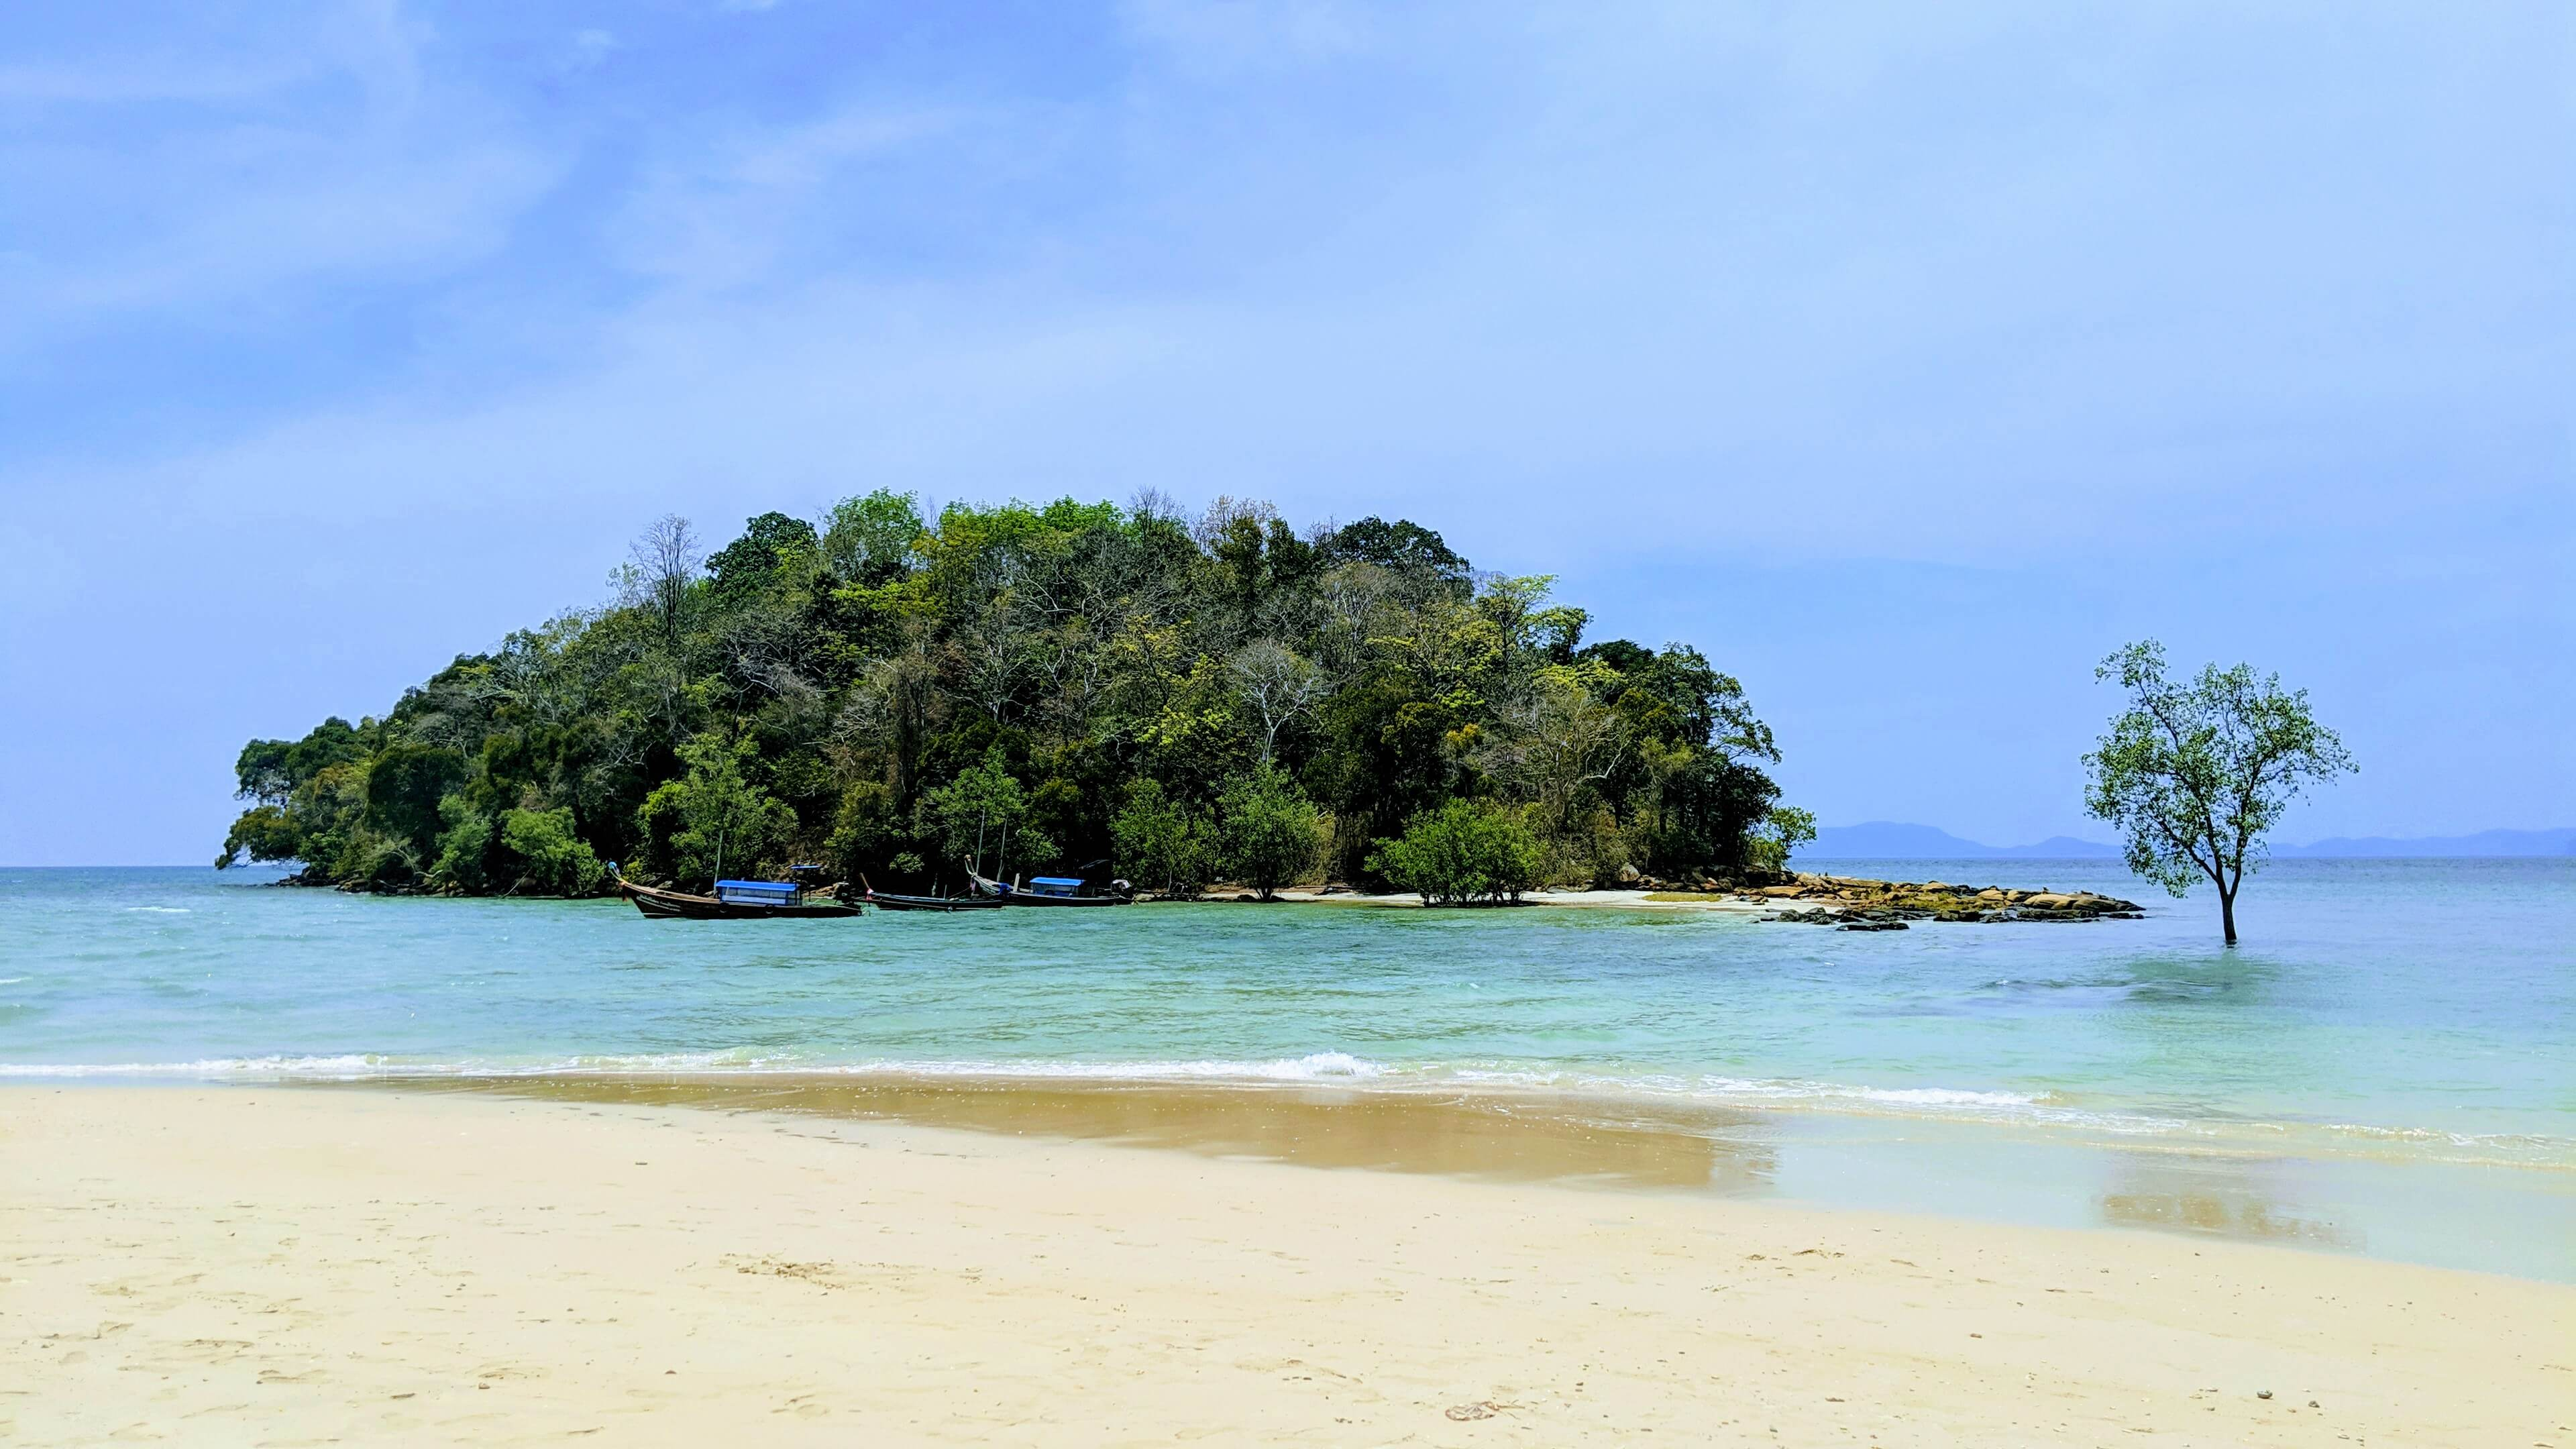 A tiny island within swimming distance of Klong Muang Beach.